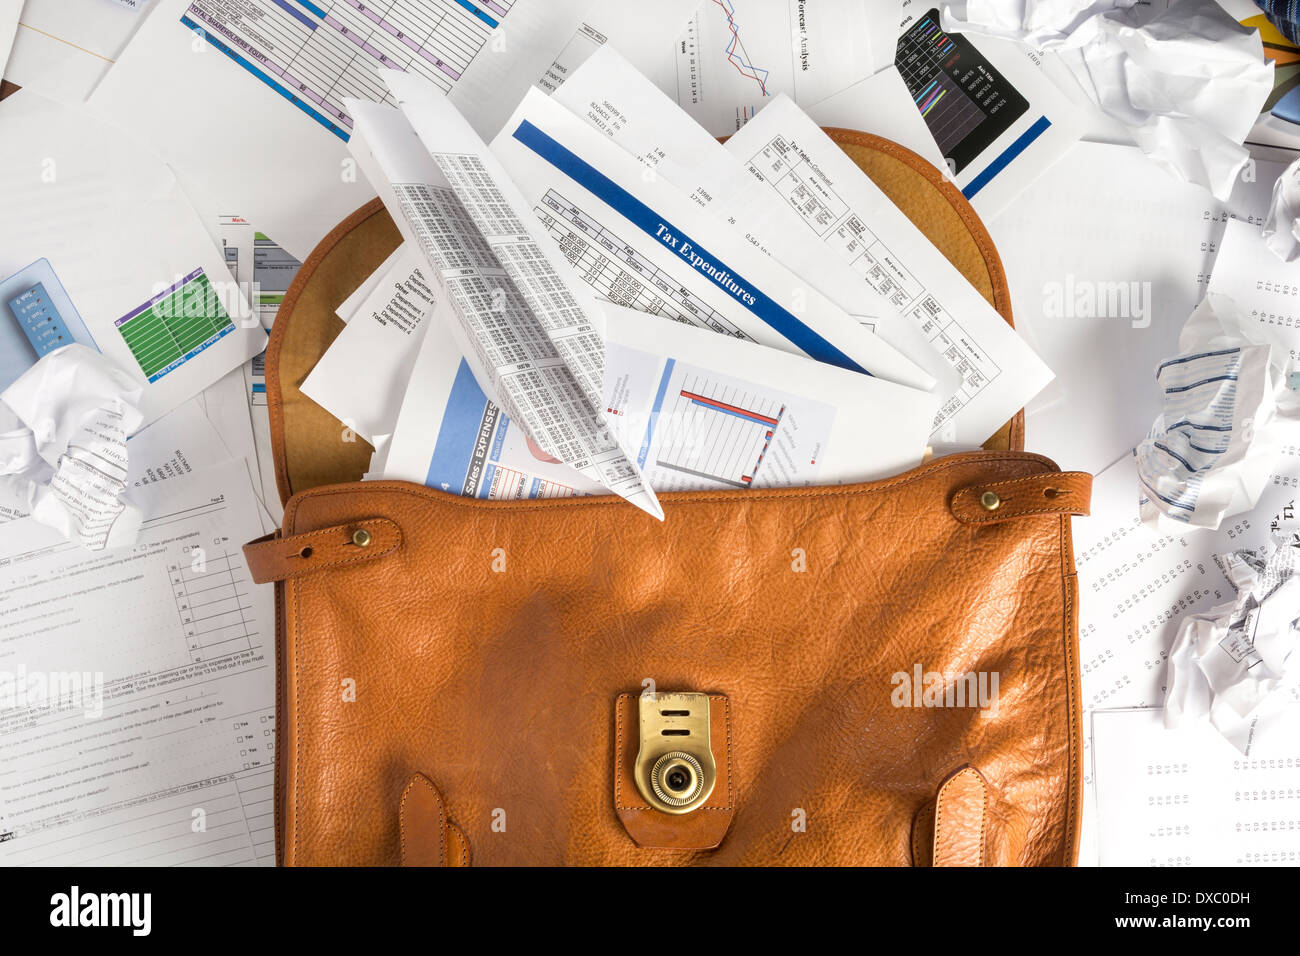 Concept photo showing briefcase open and overflowing with paperwork which can be used with tax or other financial stories - Stock Image